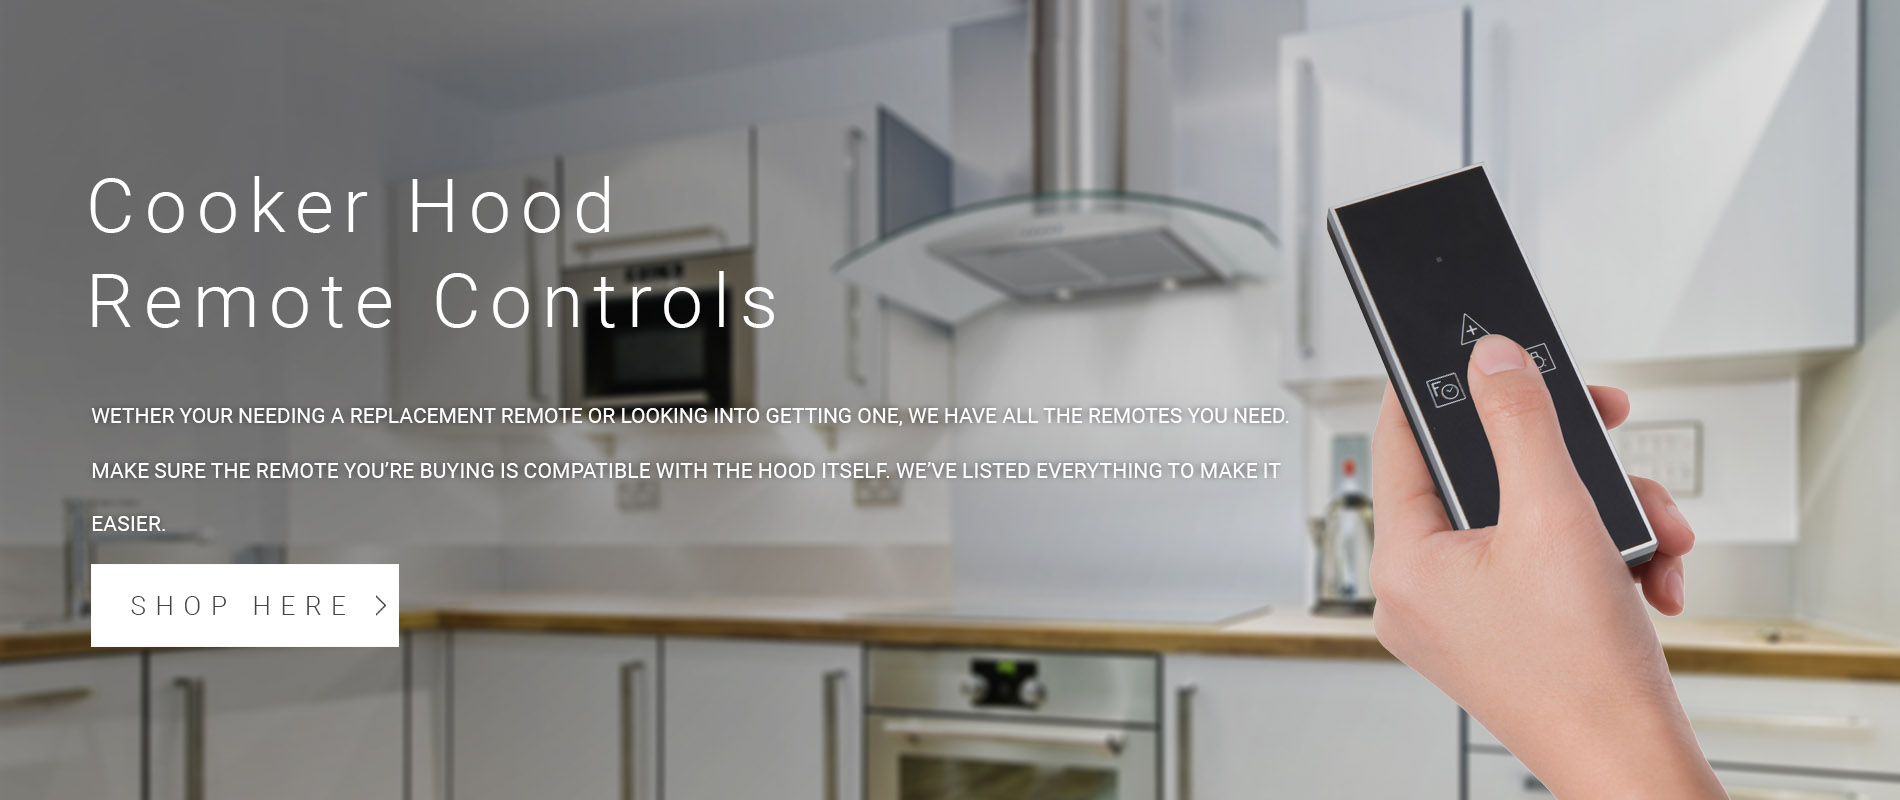 Cooker Hood Remote Controls